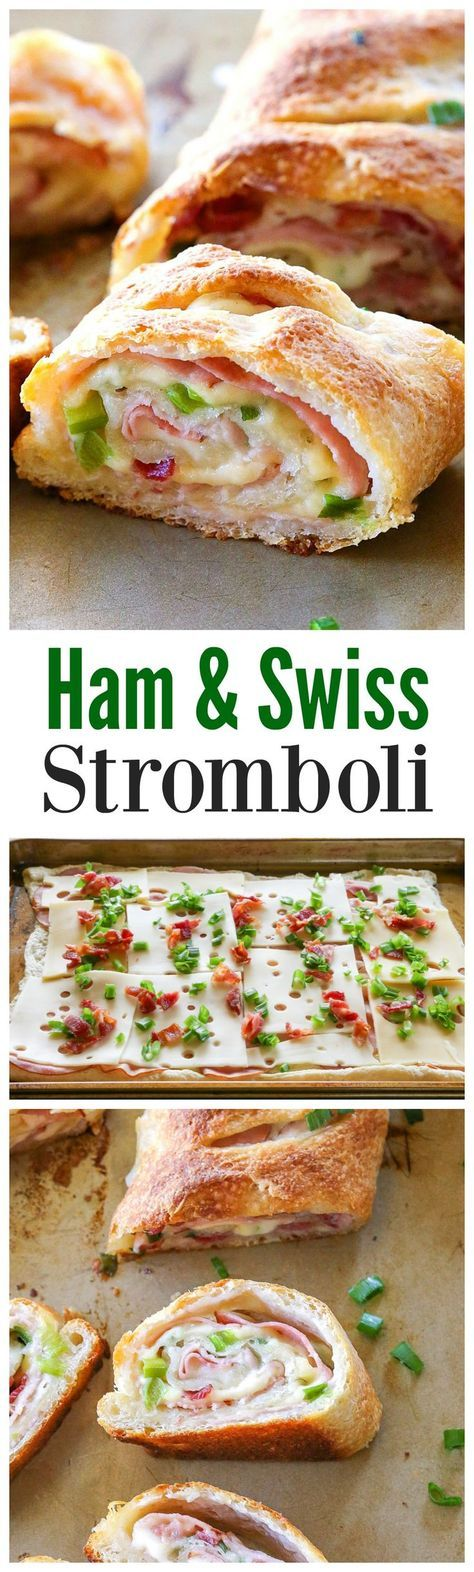 Ham and Swiss Stromboli - I love this easy weeknight dinner! http://the-girl-who-ate-everything.com